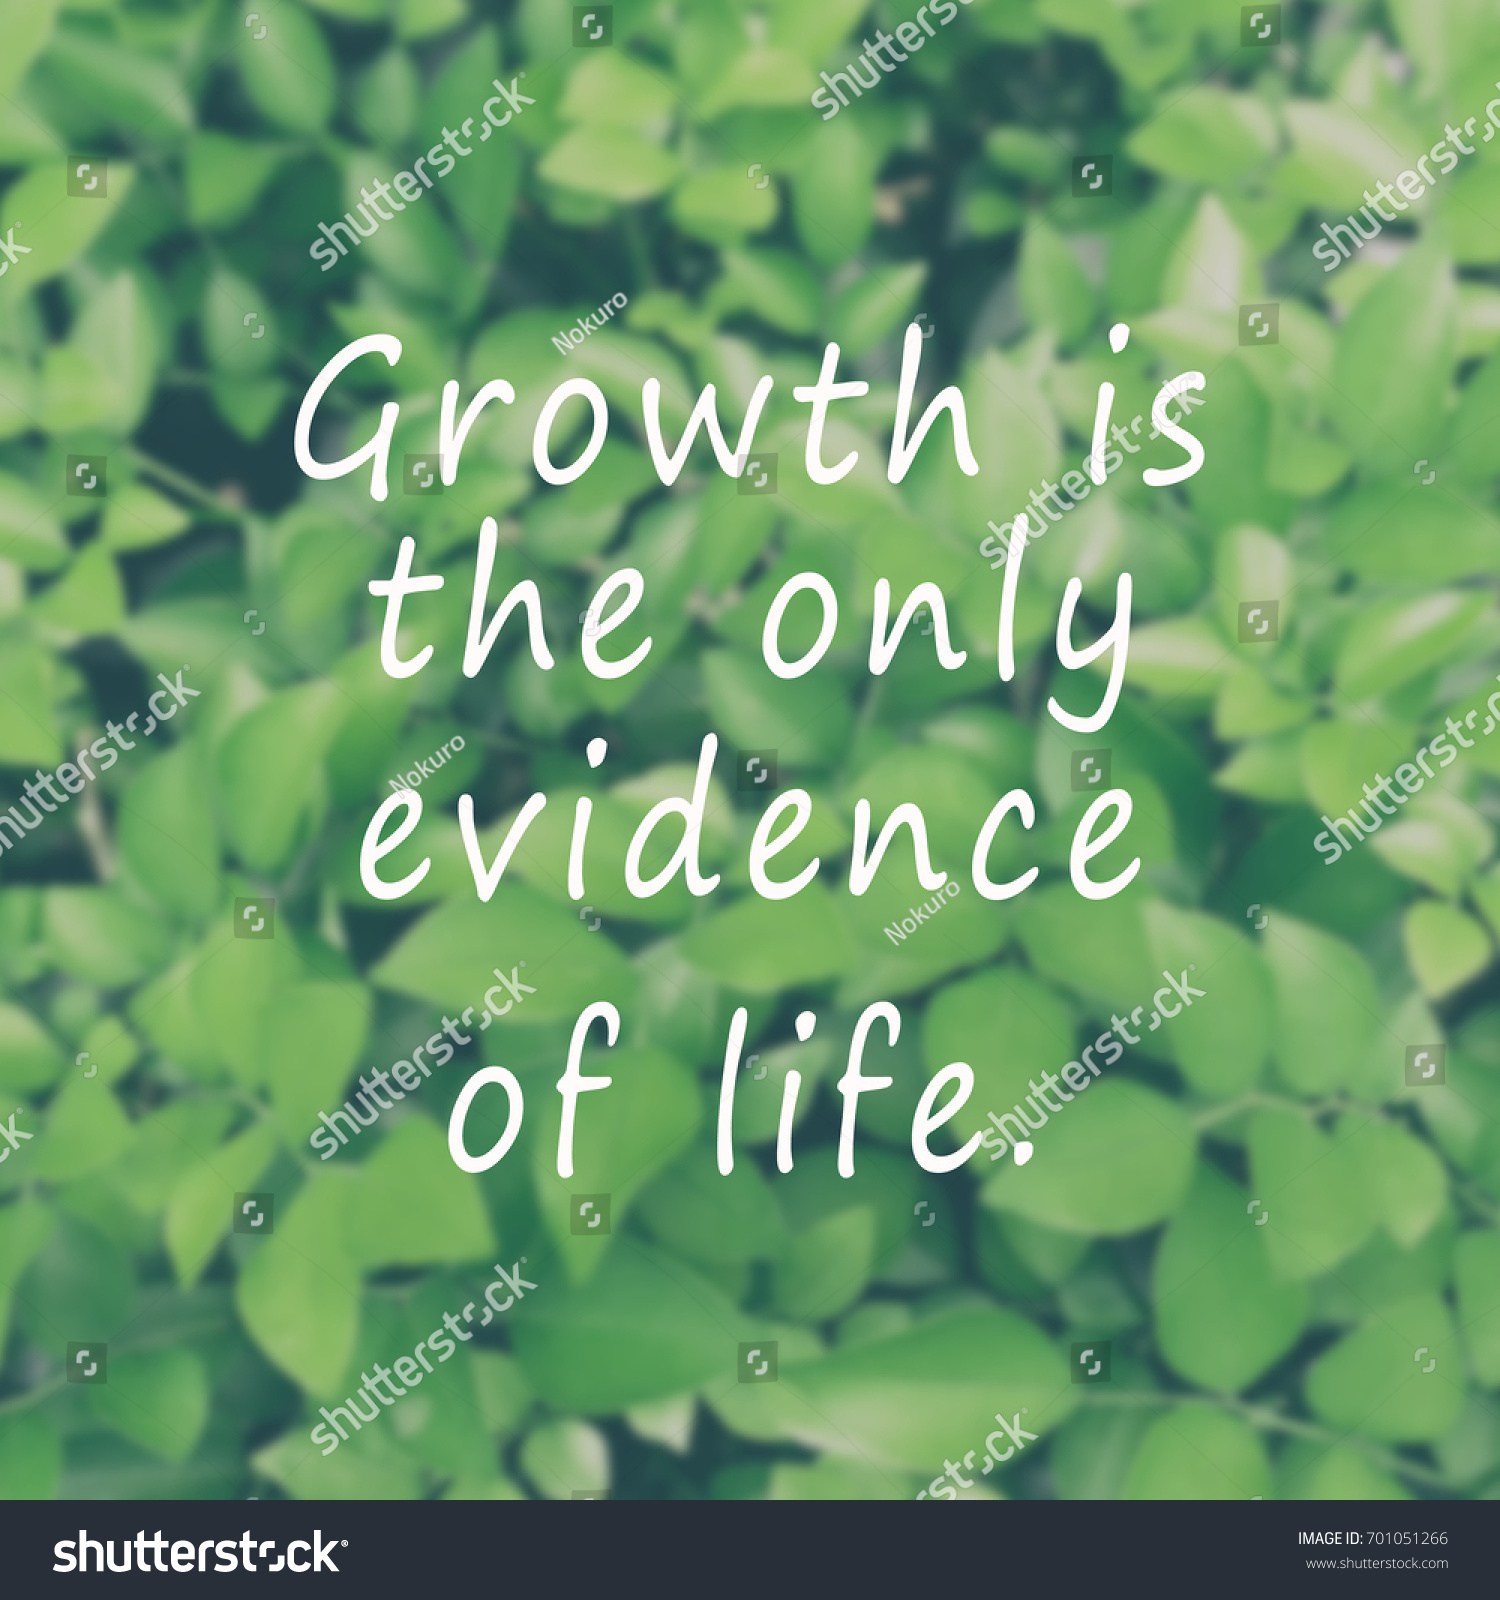 Life Inspiring Quotes Inspirational Quotes Growth Only Evidence Life Stock Photo